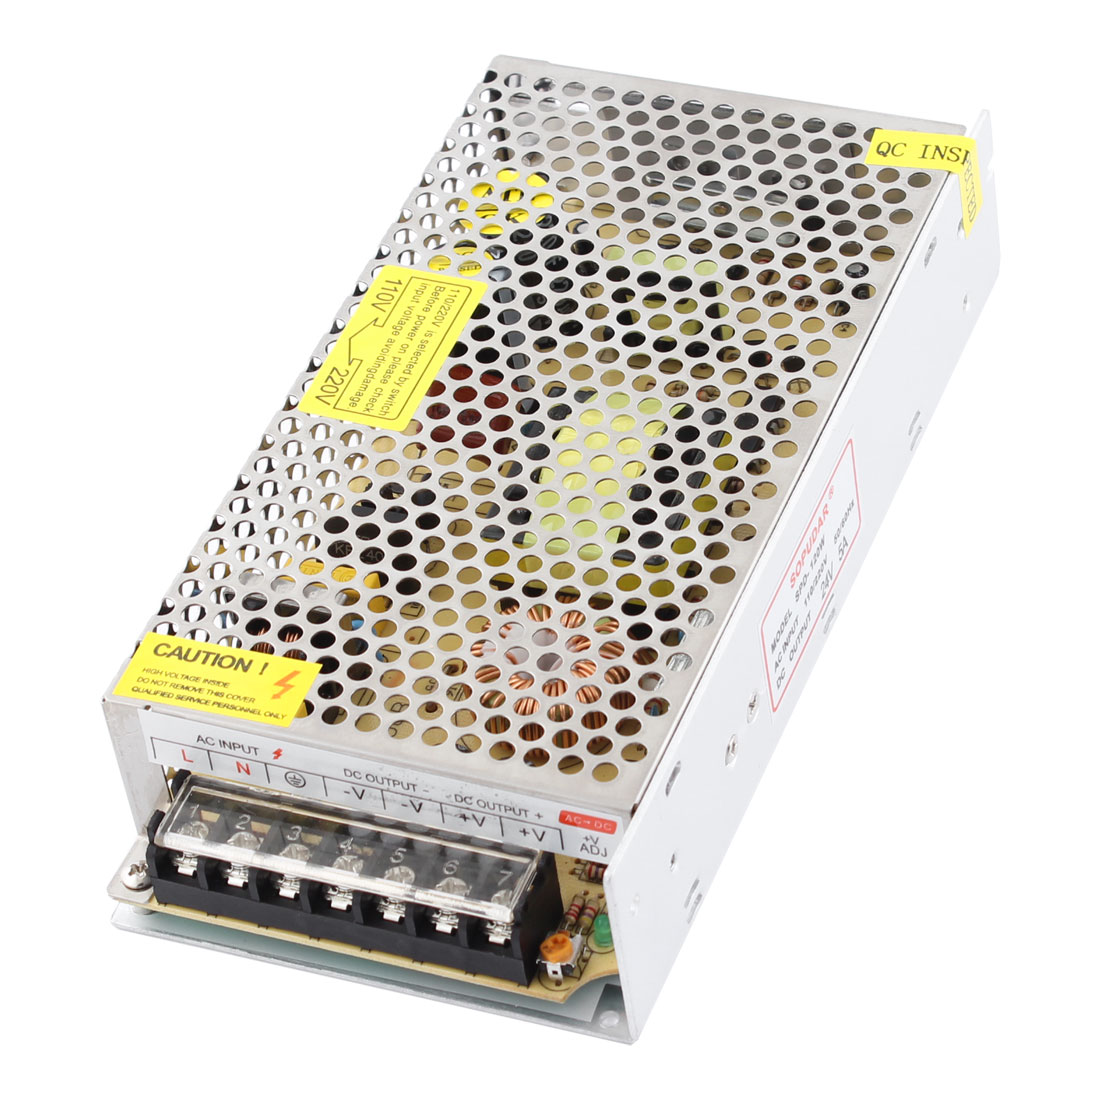 SPD-120W DC 24V 5A 120W 7 Screw Terminals Switching Power Supply Driver for LED Strip Light